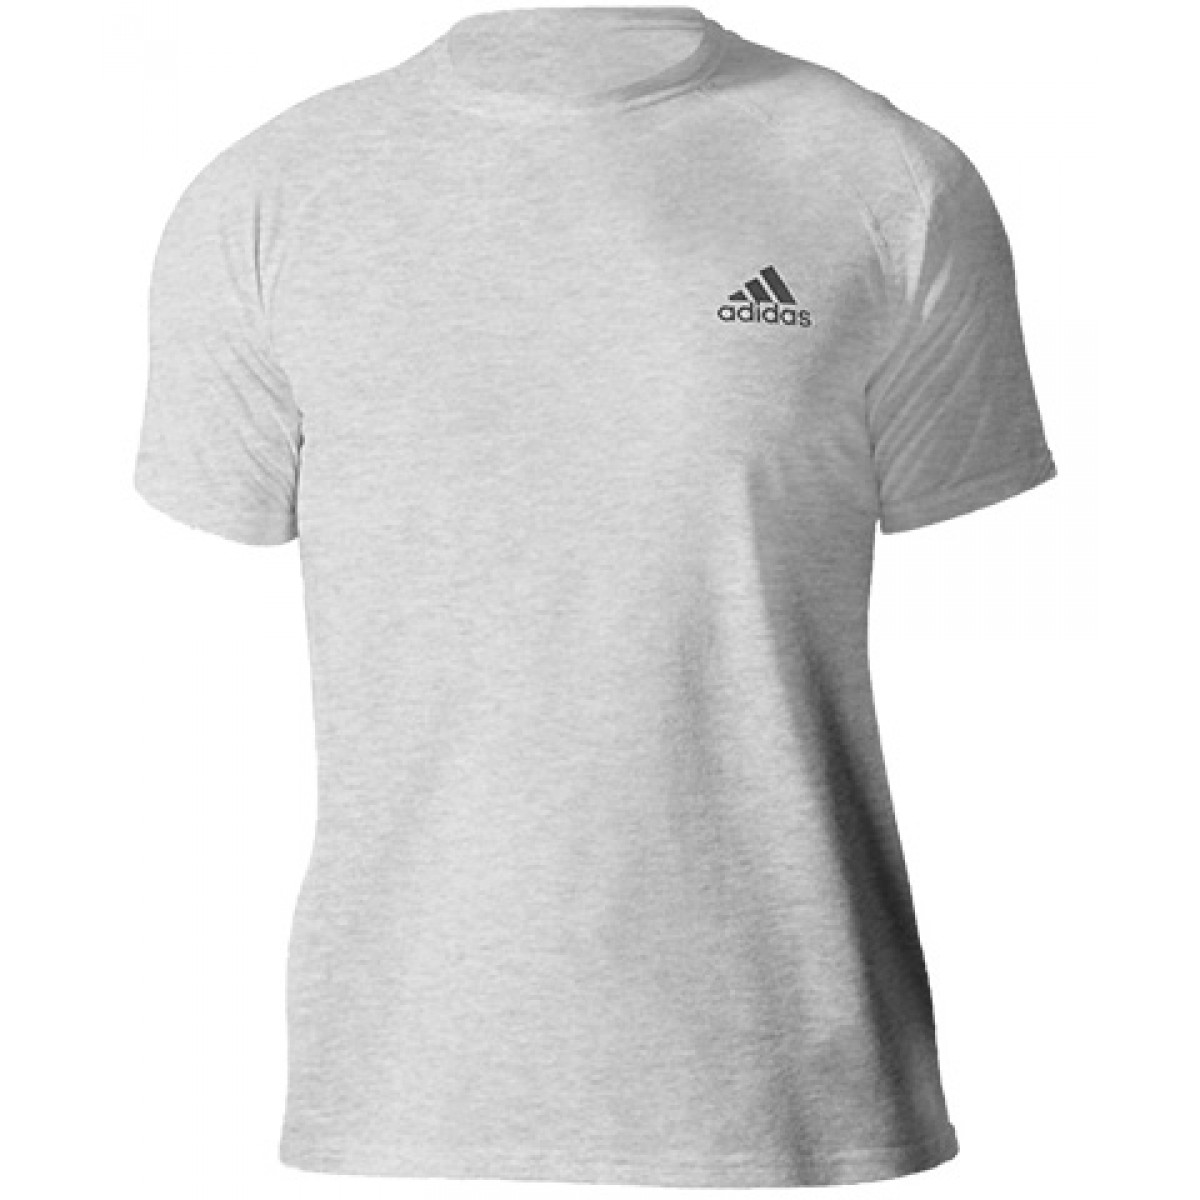 Adidas Embroidered Logo Essential Crew Neck T-shirt-Sports Grey-S